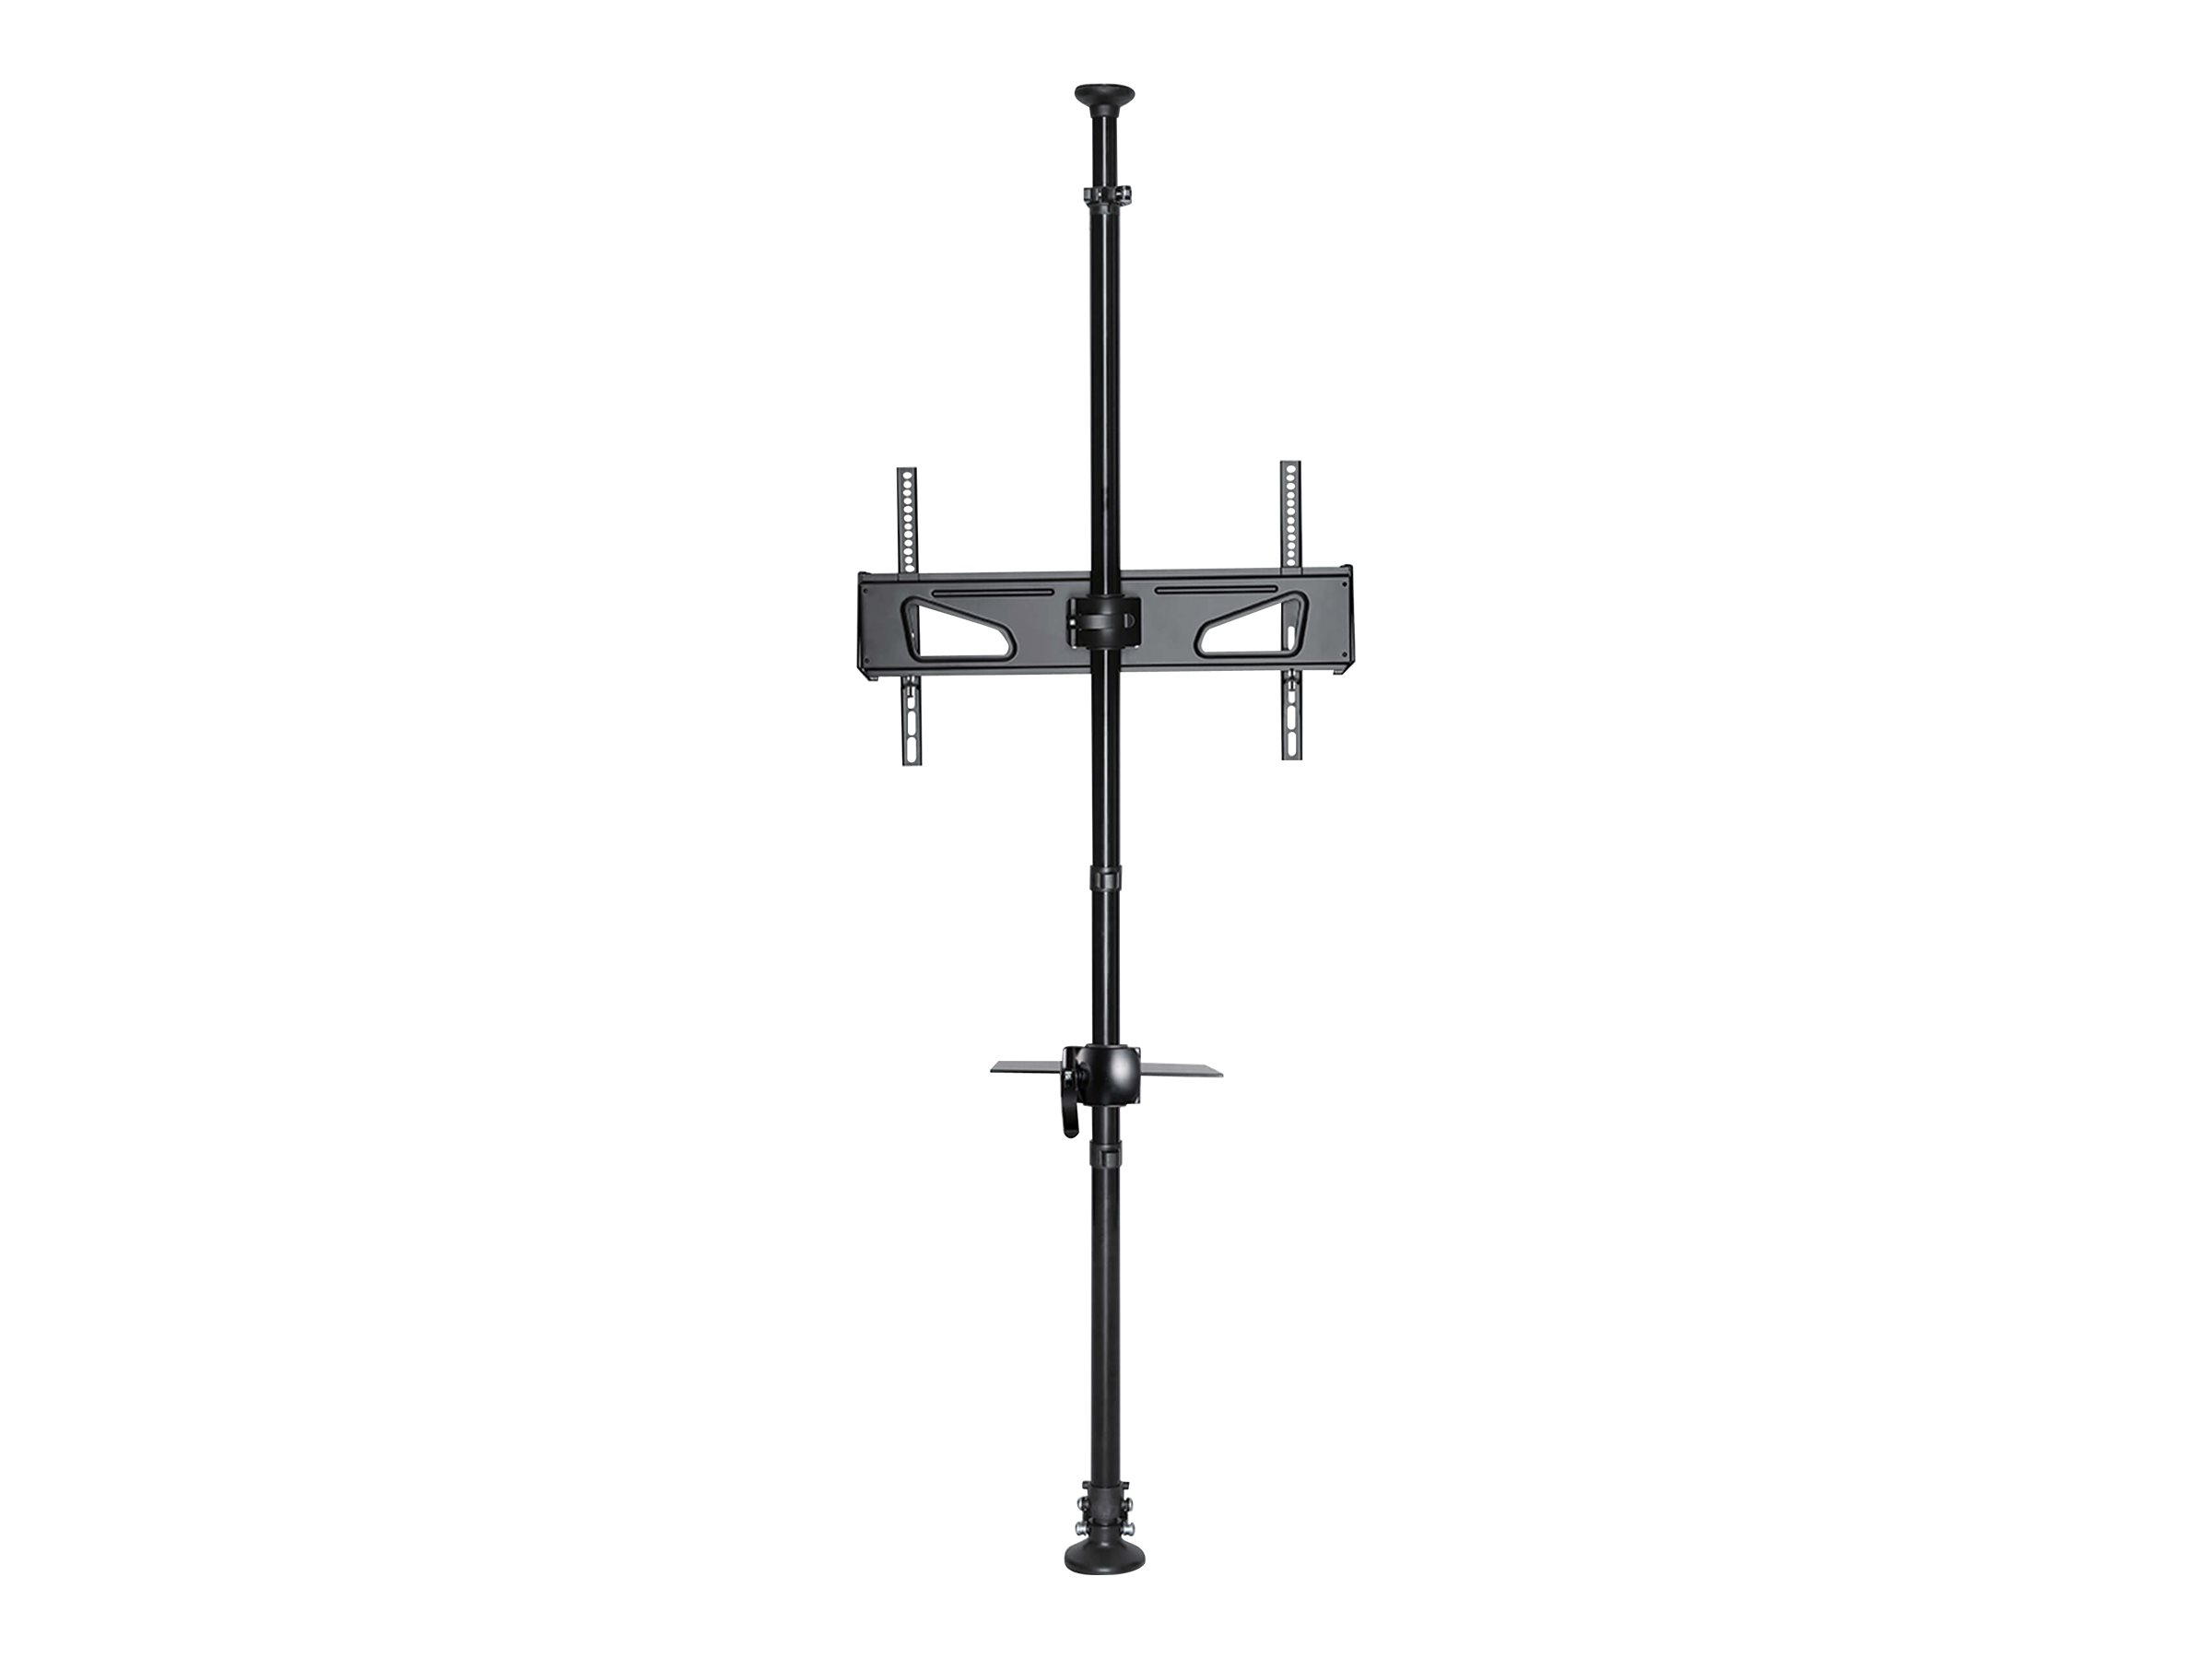 """Tripp Lite Floor-to-Ceiling Mount for 32"""" to 65"""" TVs and Monitors - Height Adjustable, Shelf for A/V Source - mount"""